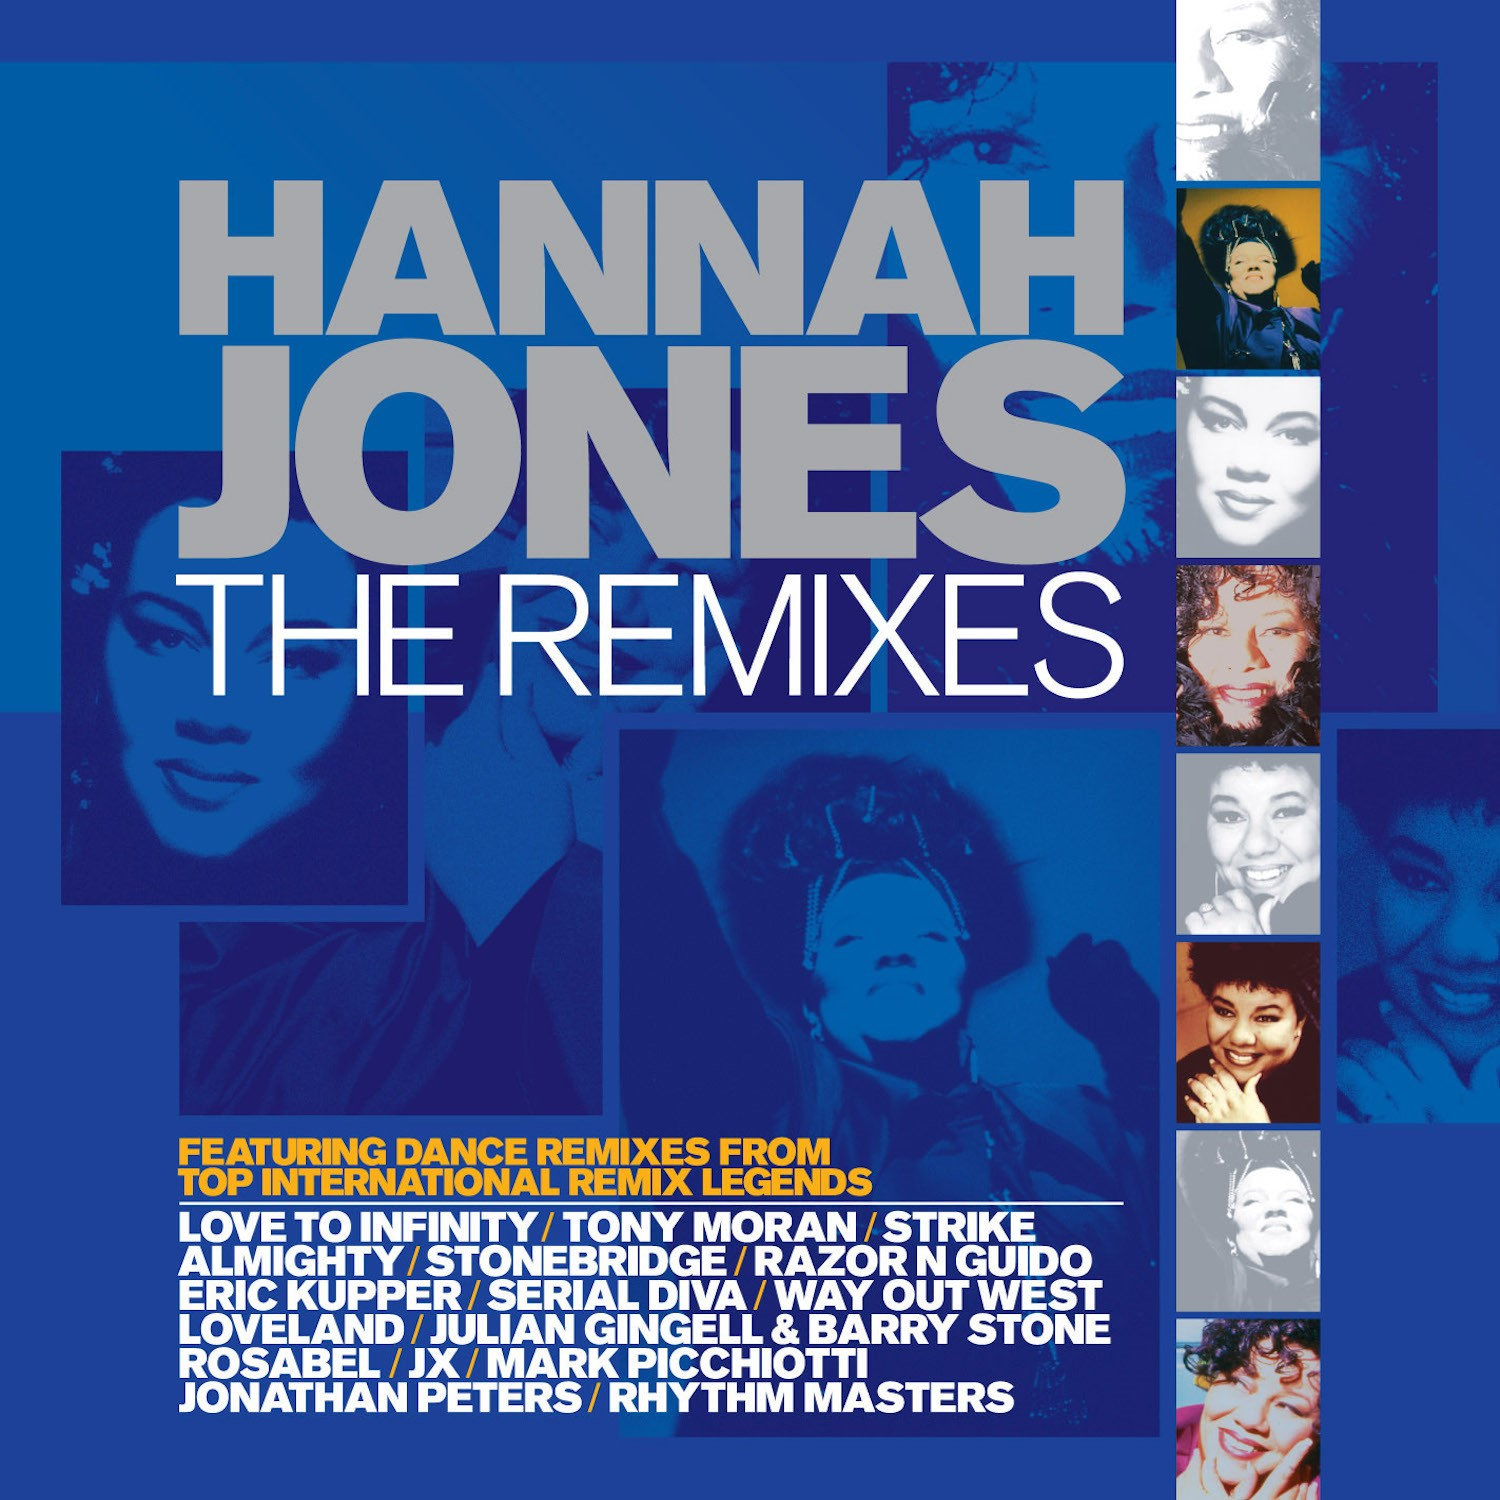 Hannah Jones - Hannah Jones is one of Britain's most talented performers. With her unique and gutsy powerhouse vocal she is one of those true divas who has stood the test of time — as popular now as she was when her debut release 'Bridge Over Troubled Water' reached the UK Top 30 in 1991.Read More →